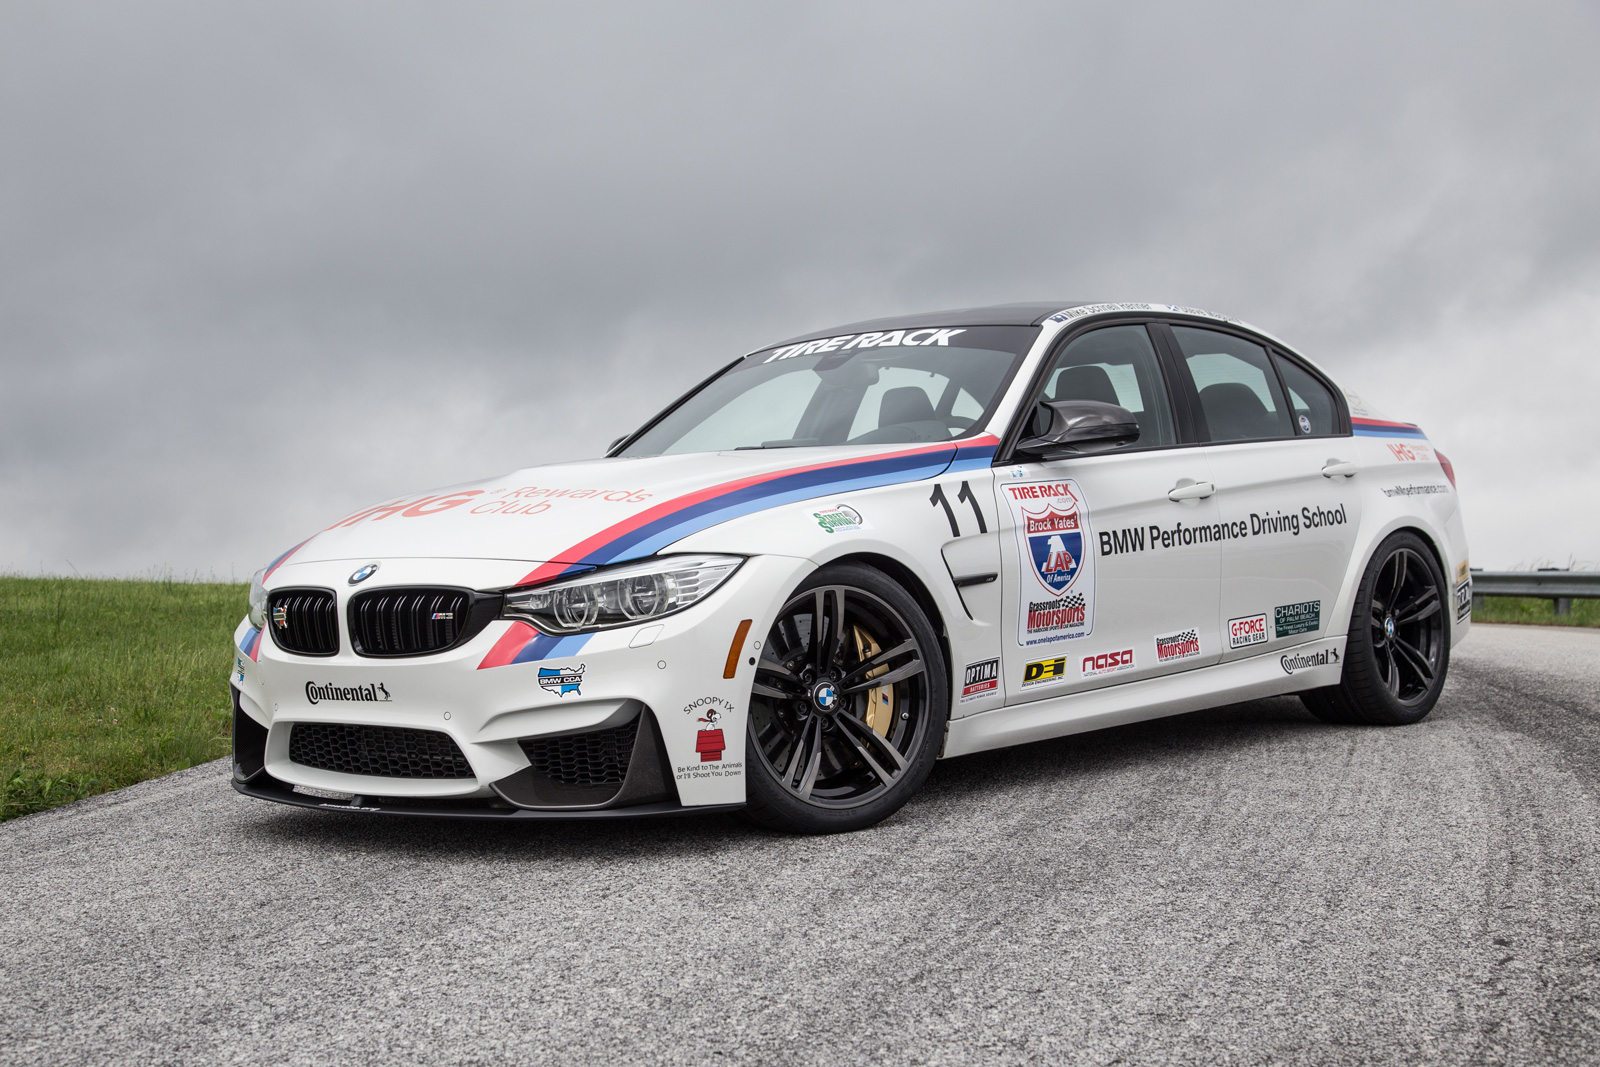 Performance Driving School >> The Bmw Performance Driving School Is Taking On One Lap Of America